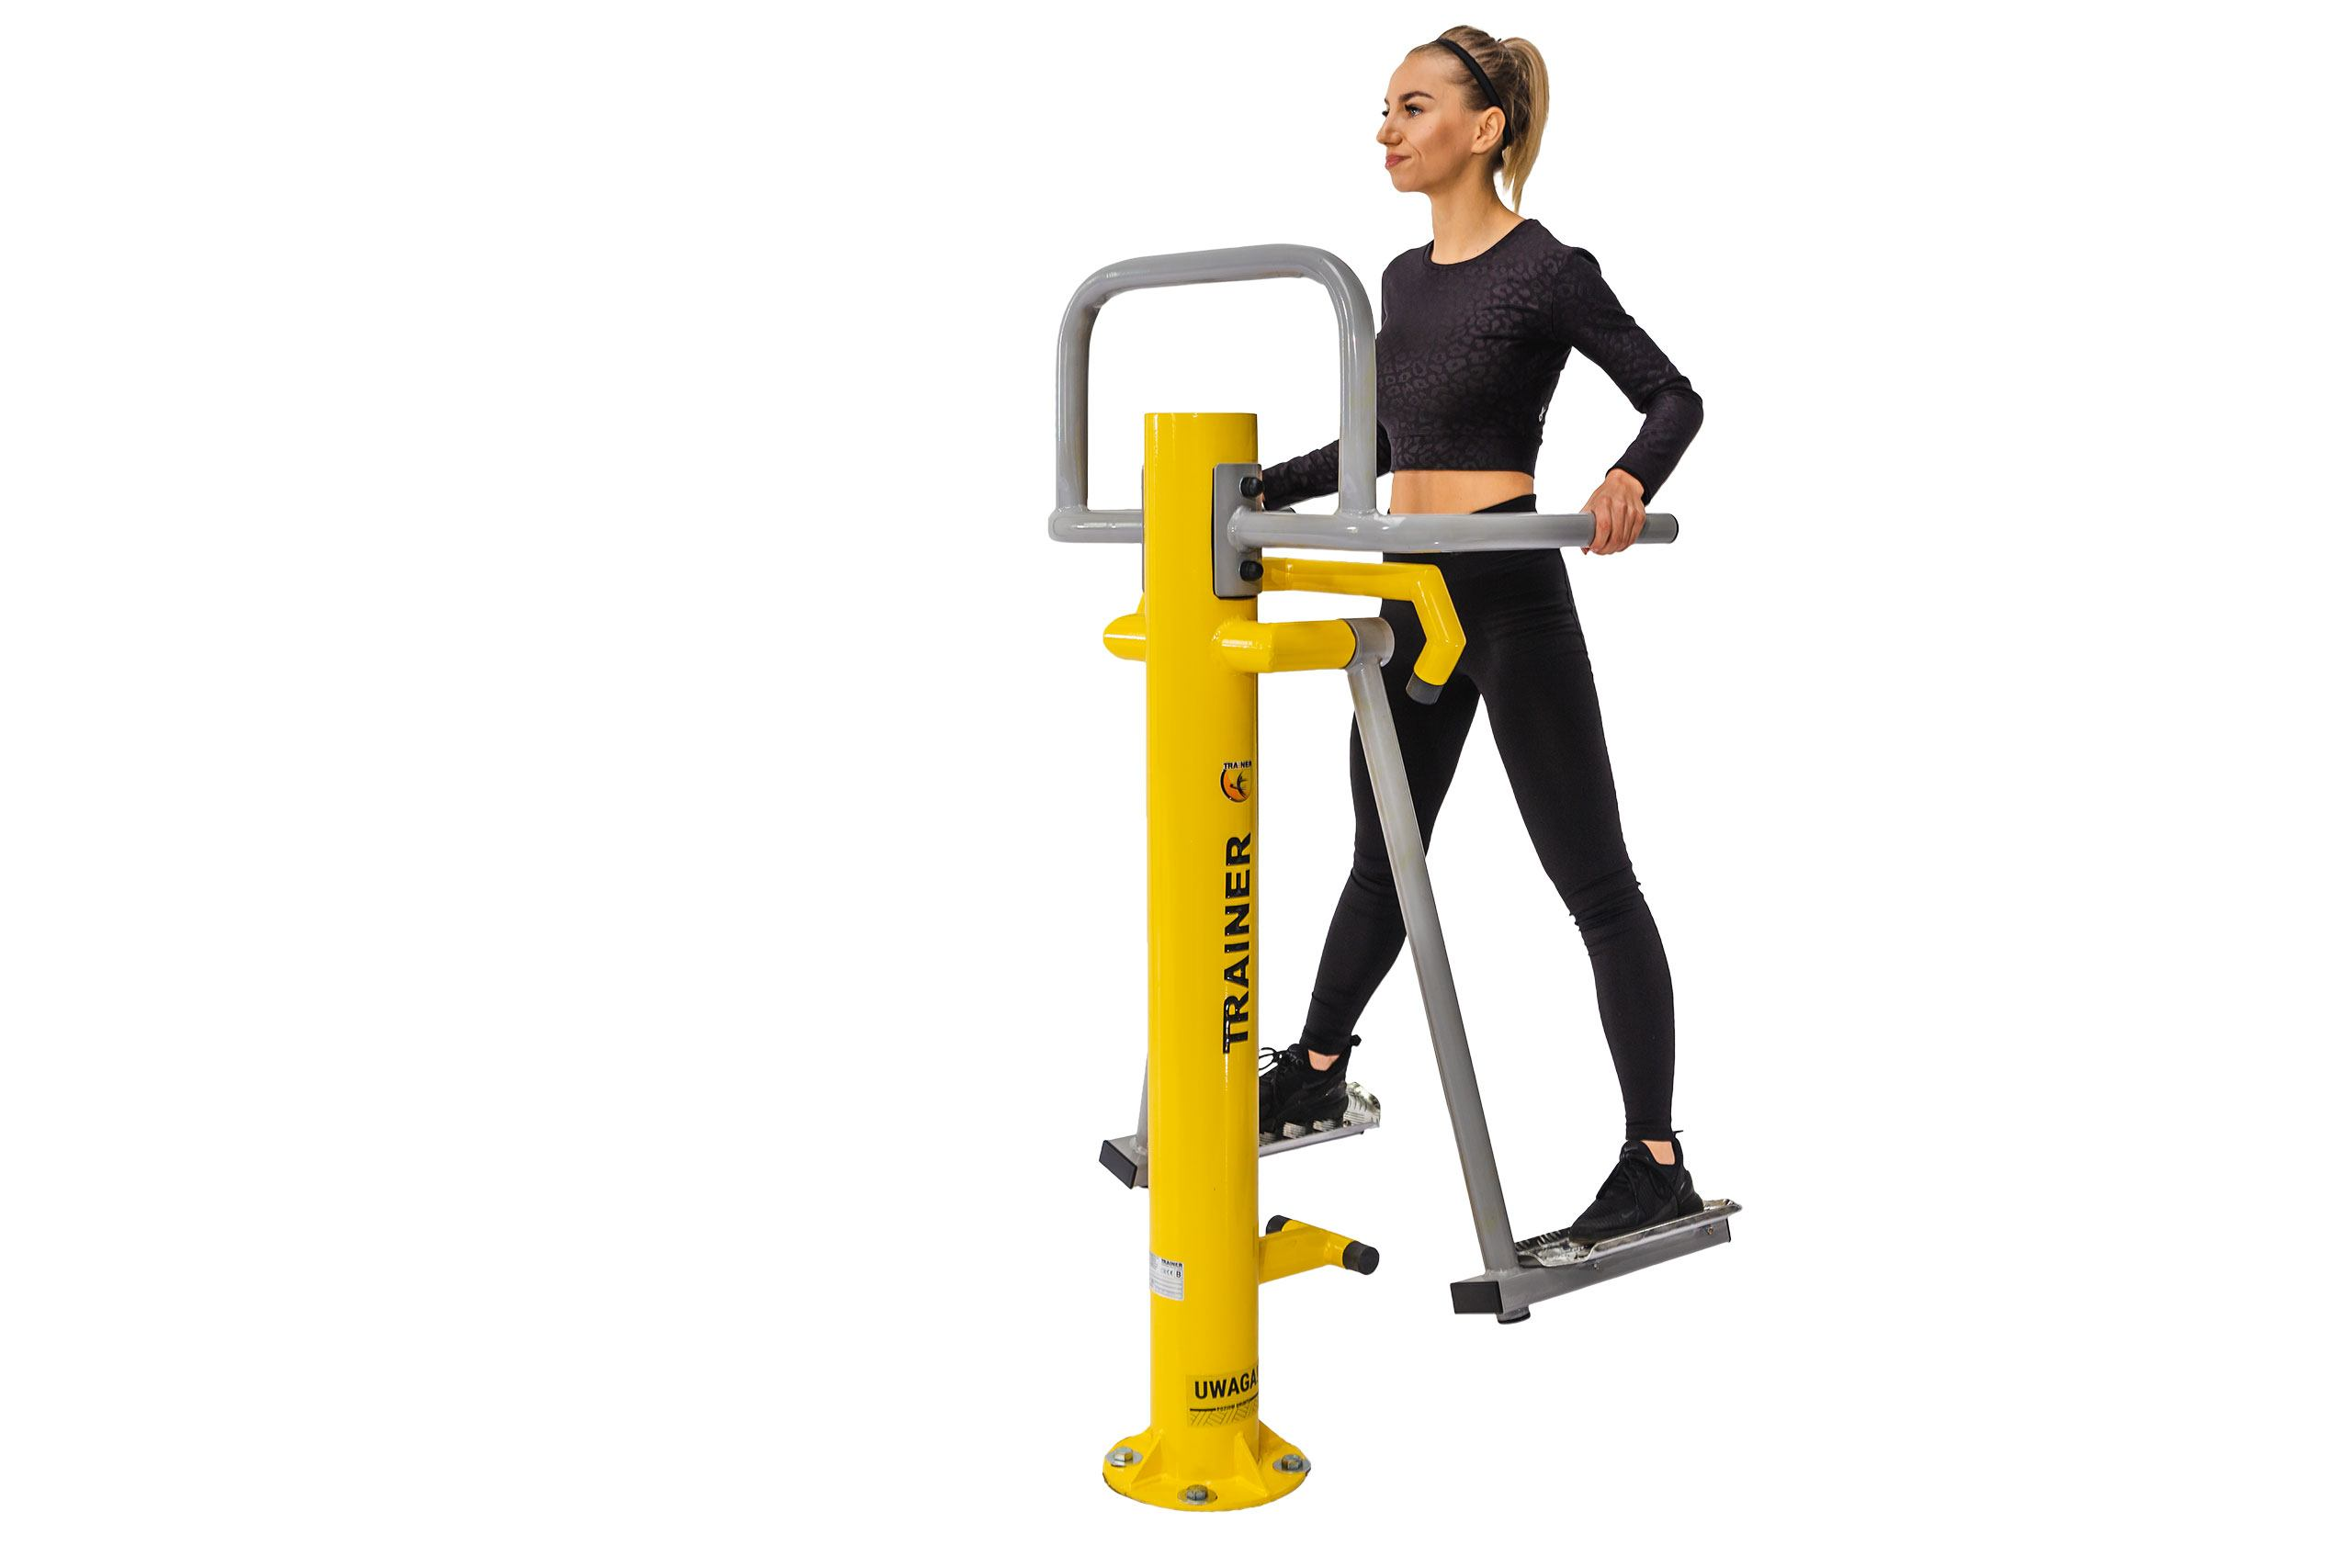 Adductor & Abductor Outdoor Gym Equipment